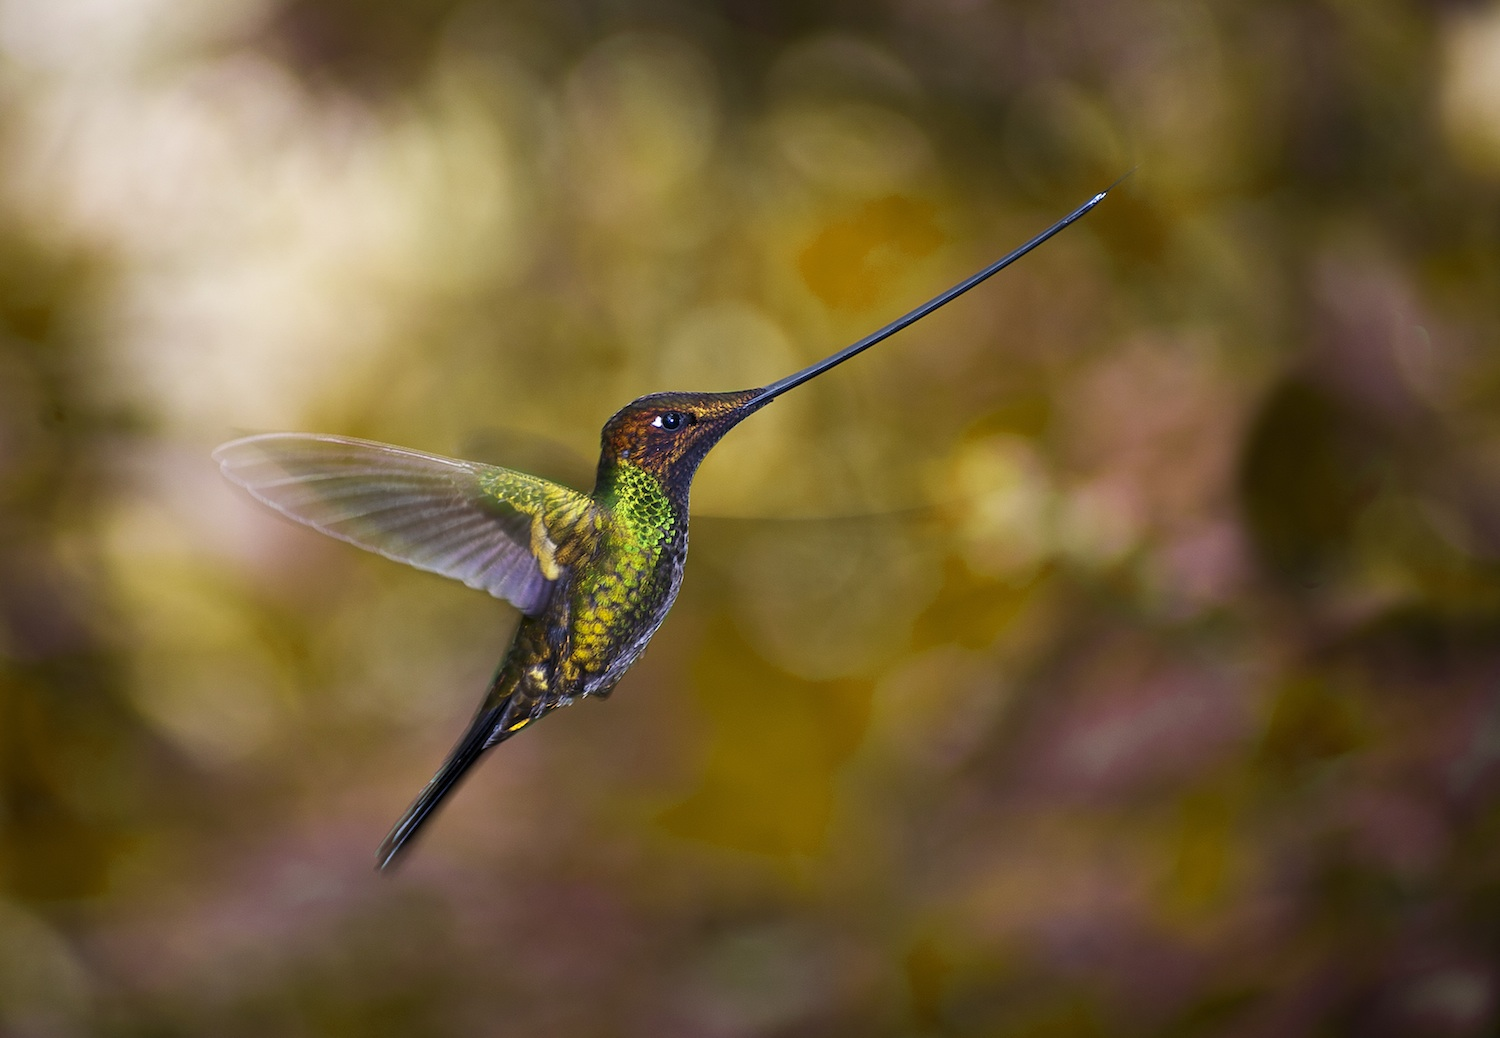 Sword-billed_hummingbird_-Guango2.jpg